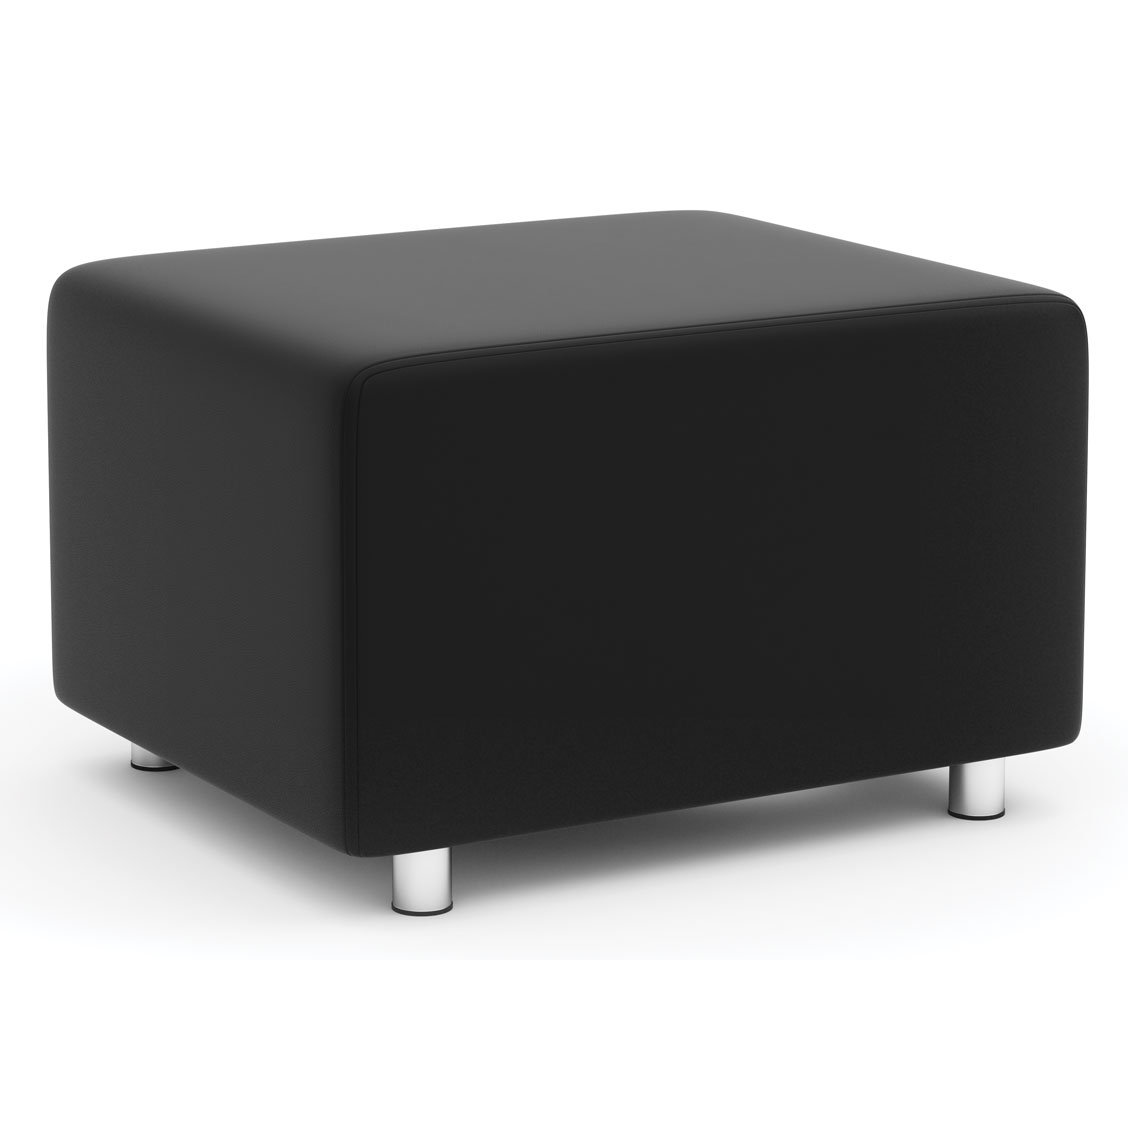 OfficeSource Integrate Collection Square Ottoman or Backless Seat